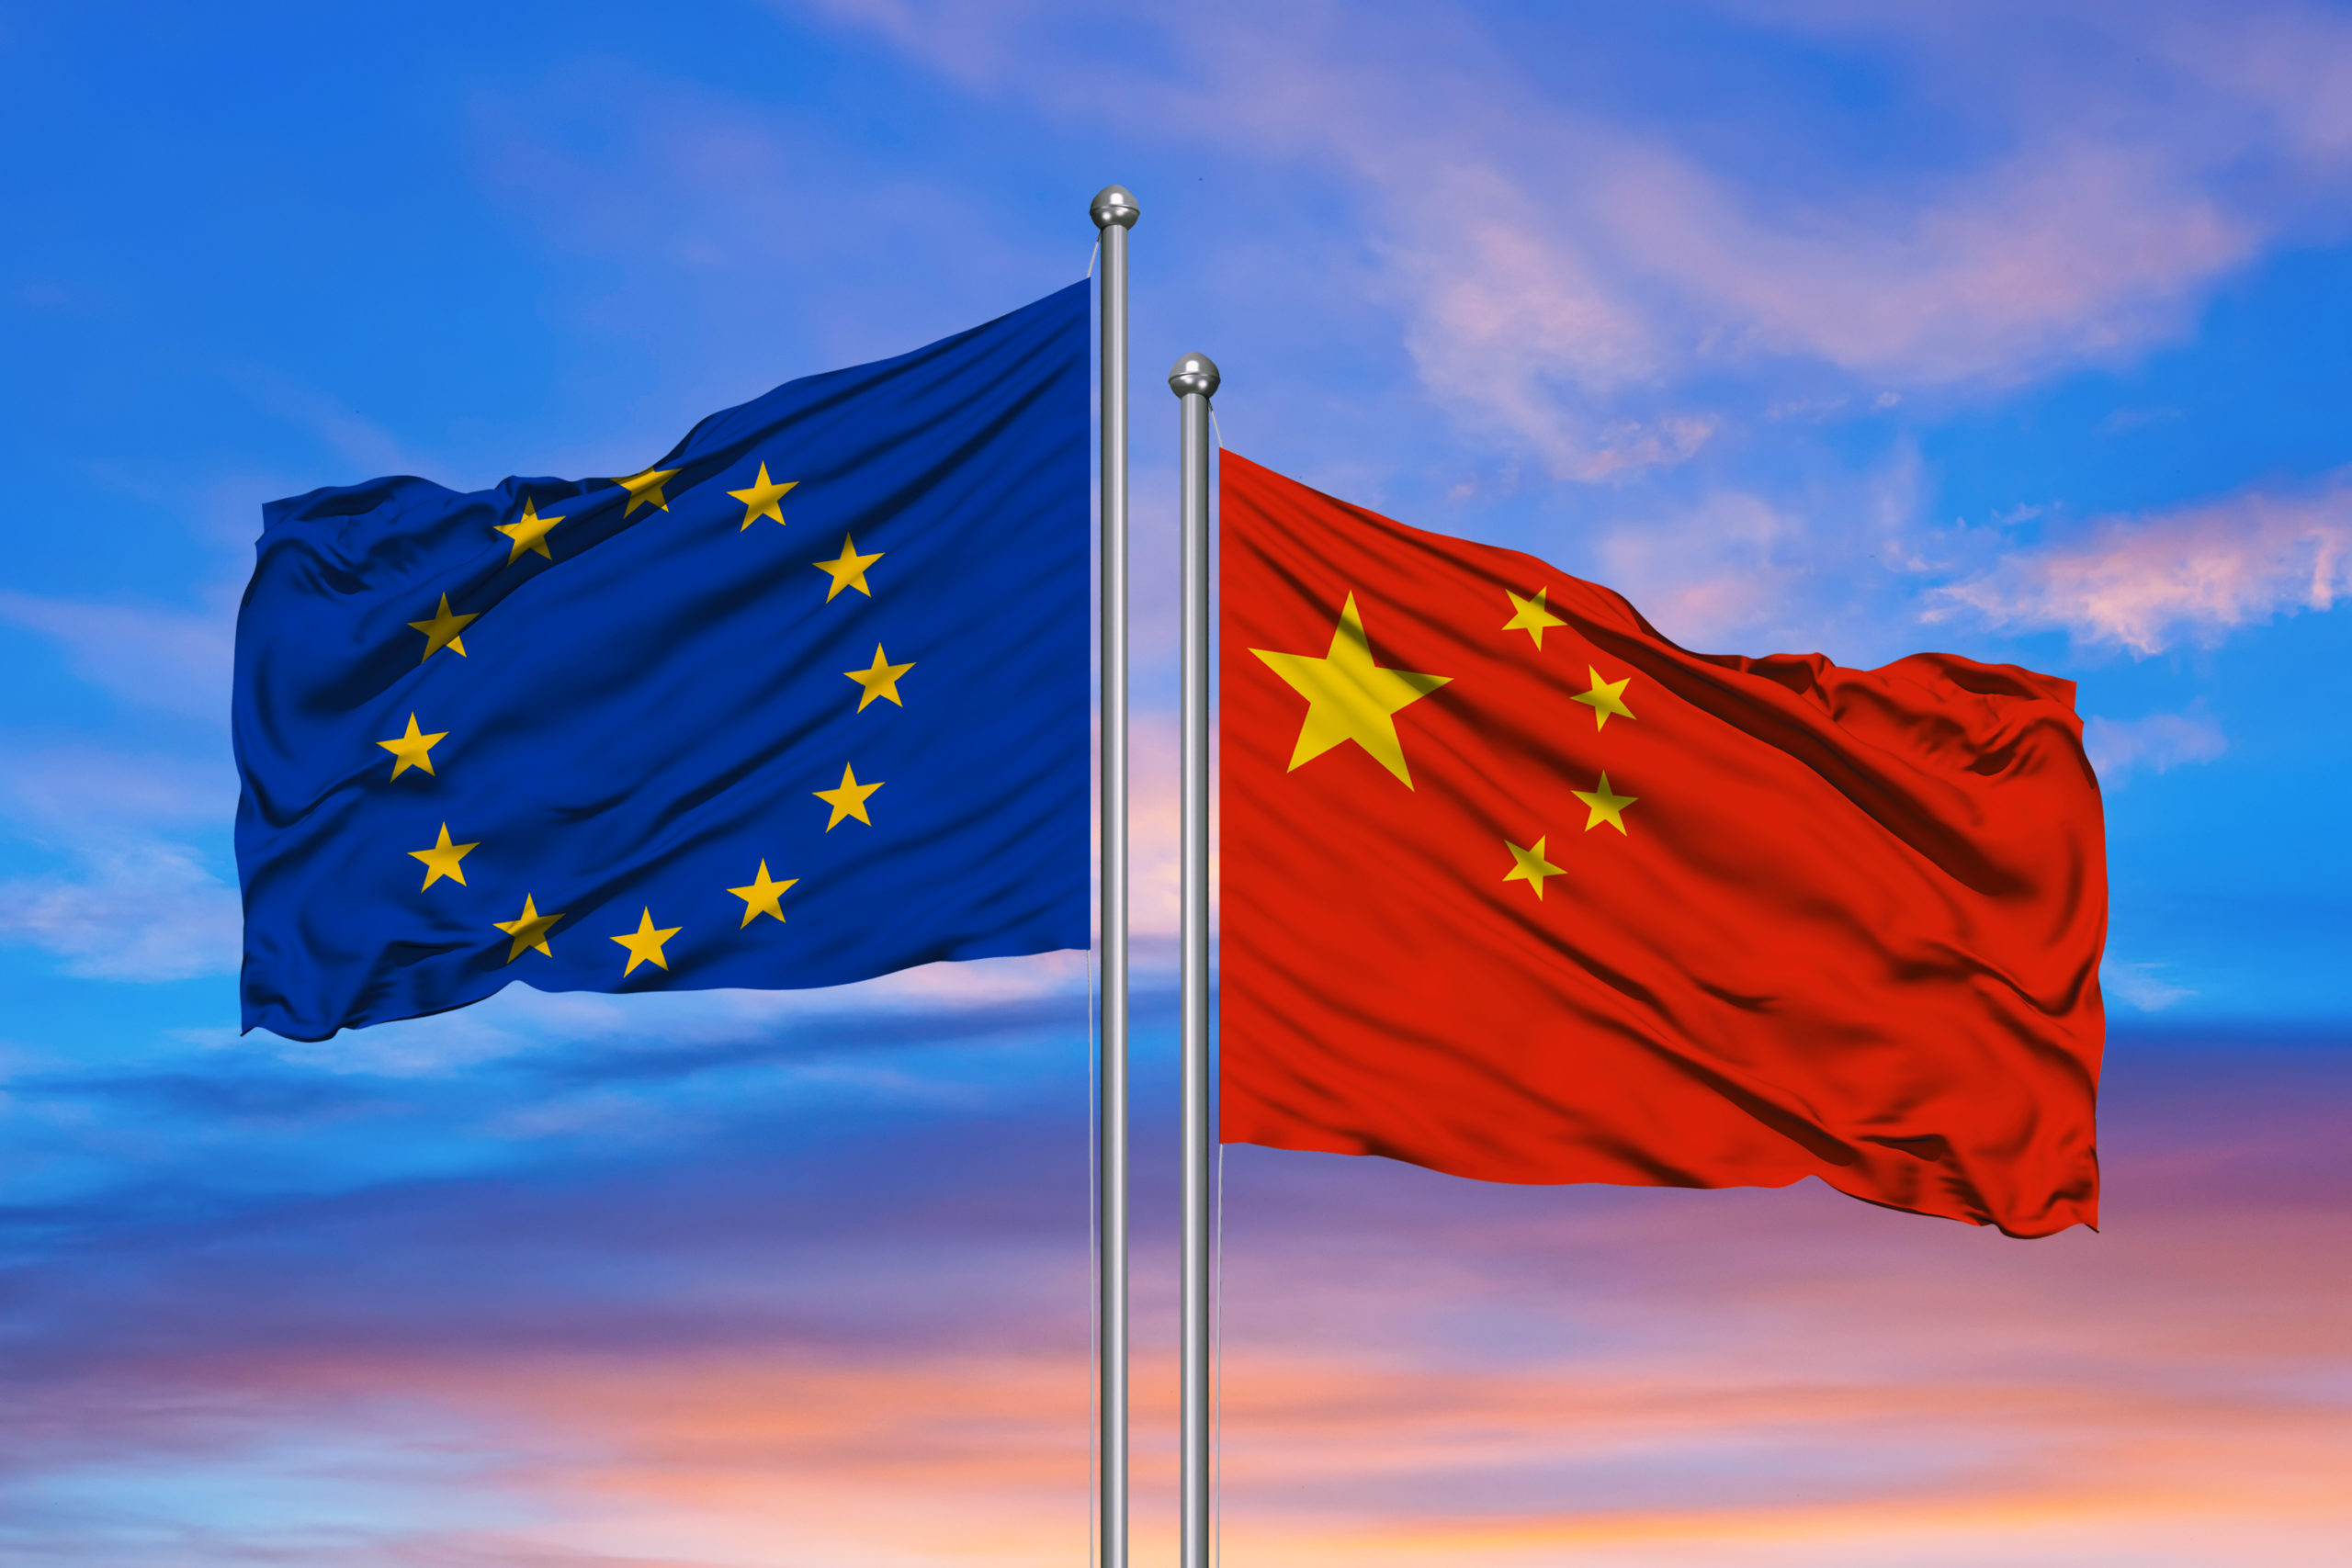 EU relations with China